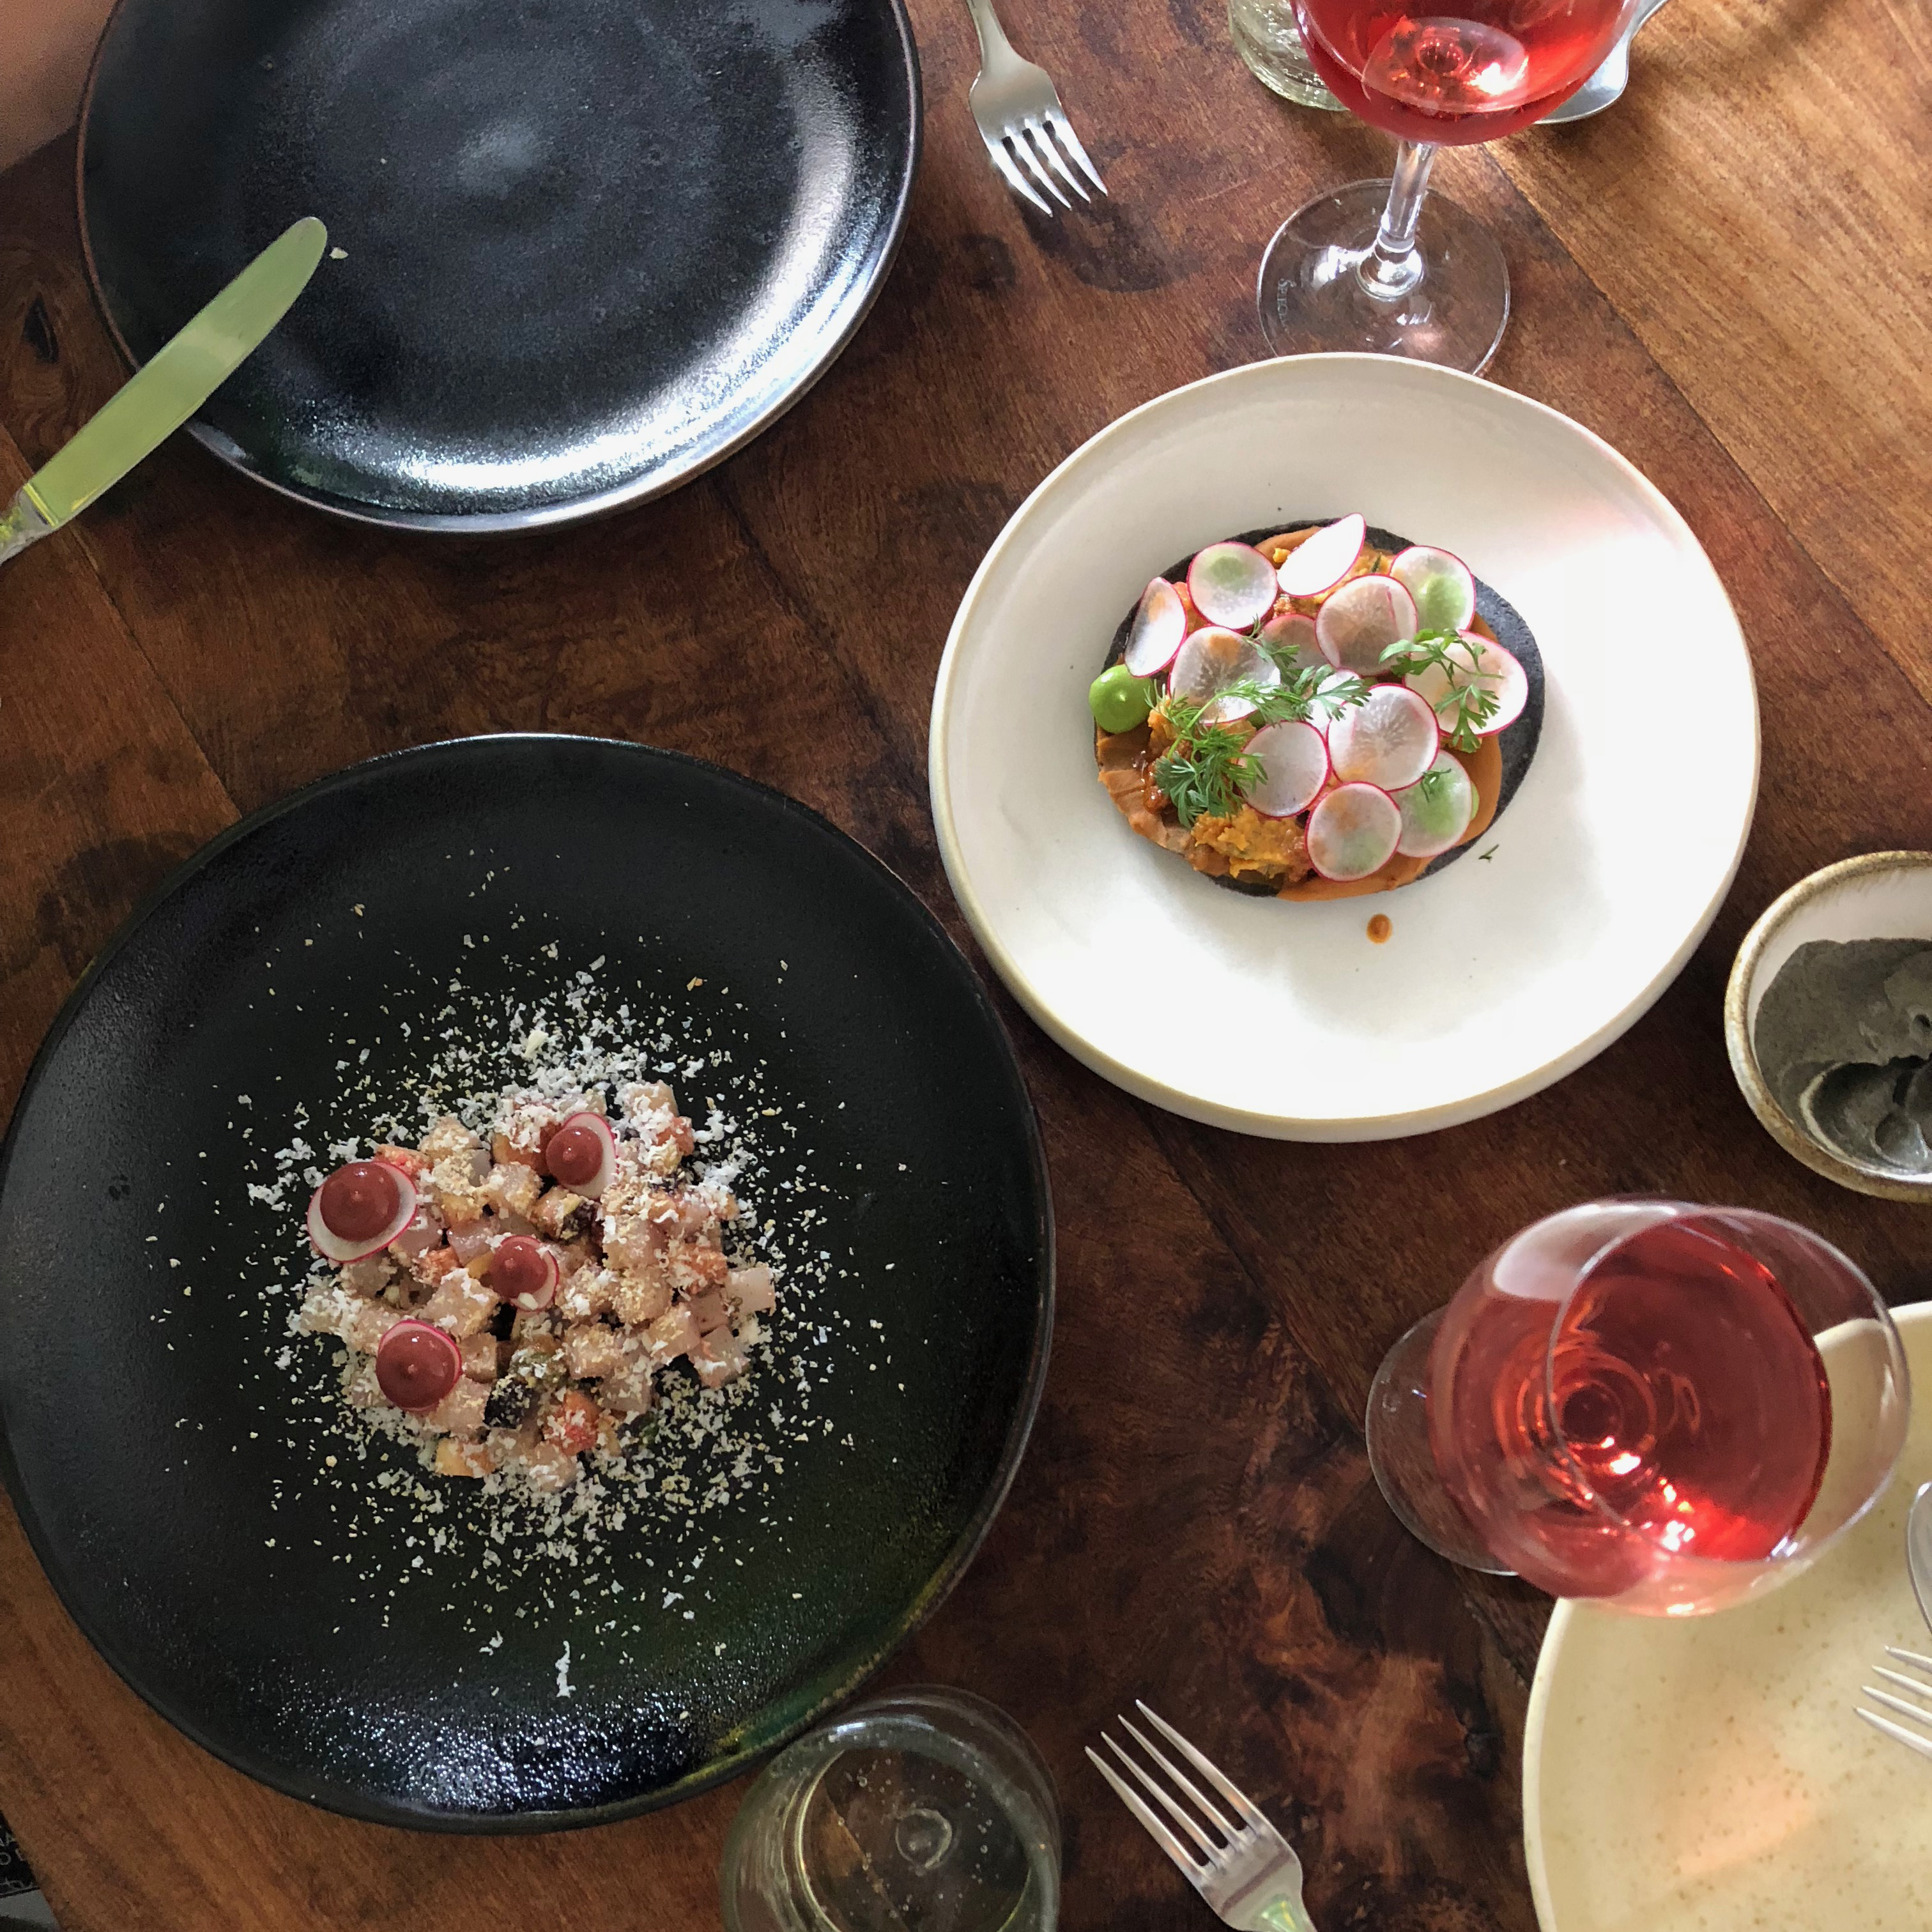 Maximo-Bistrot-Mexico-City.jpg?mtime=20180921120112#asset:103296